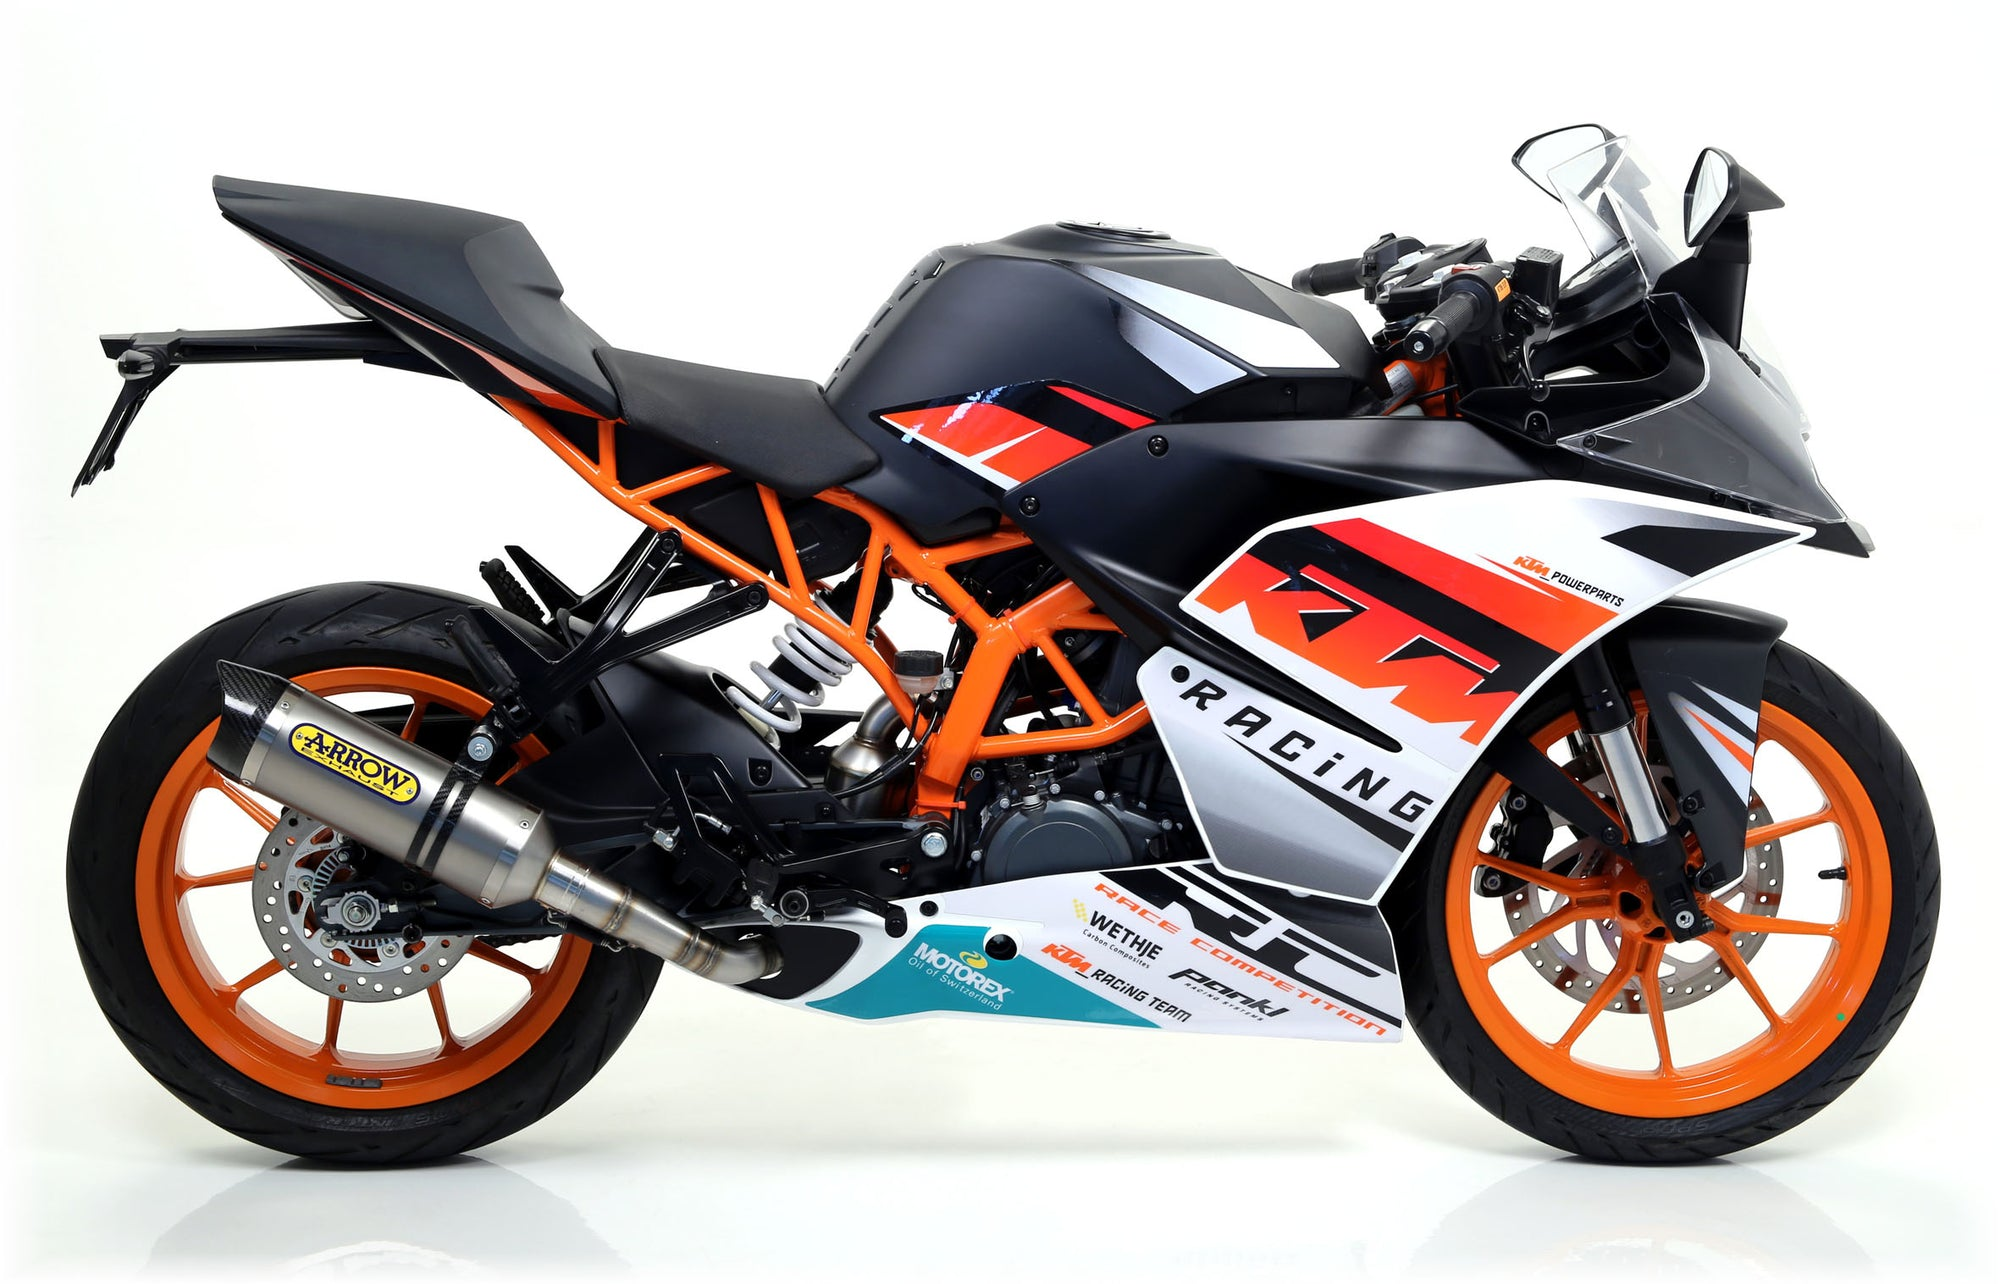 Arrow Street Thunder Slip-On KTM RC 390 2015-2016